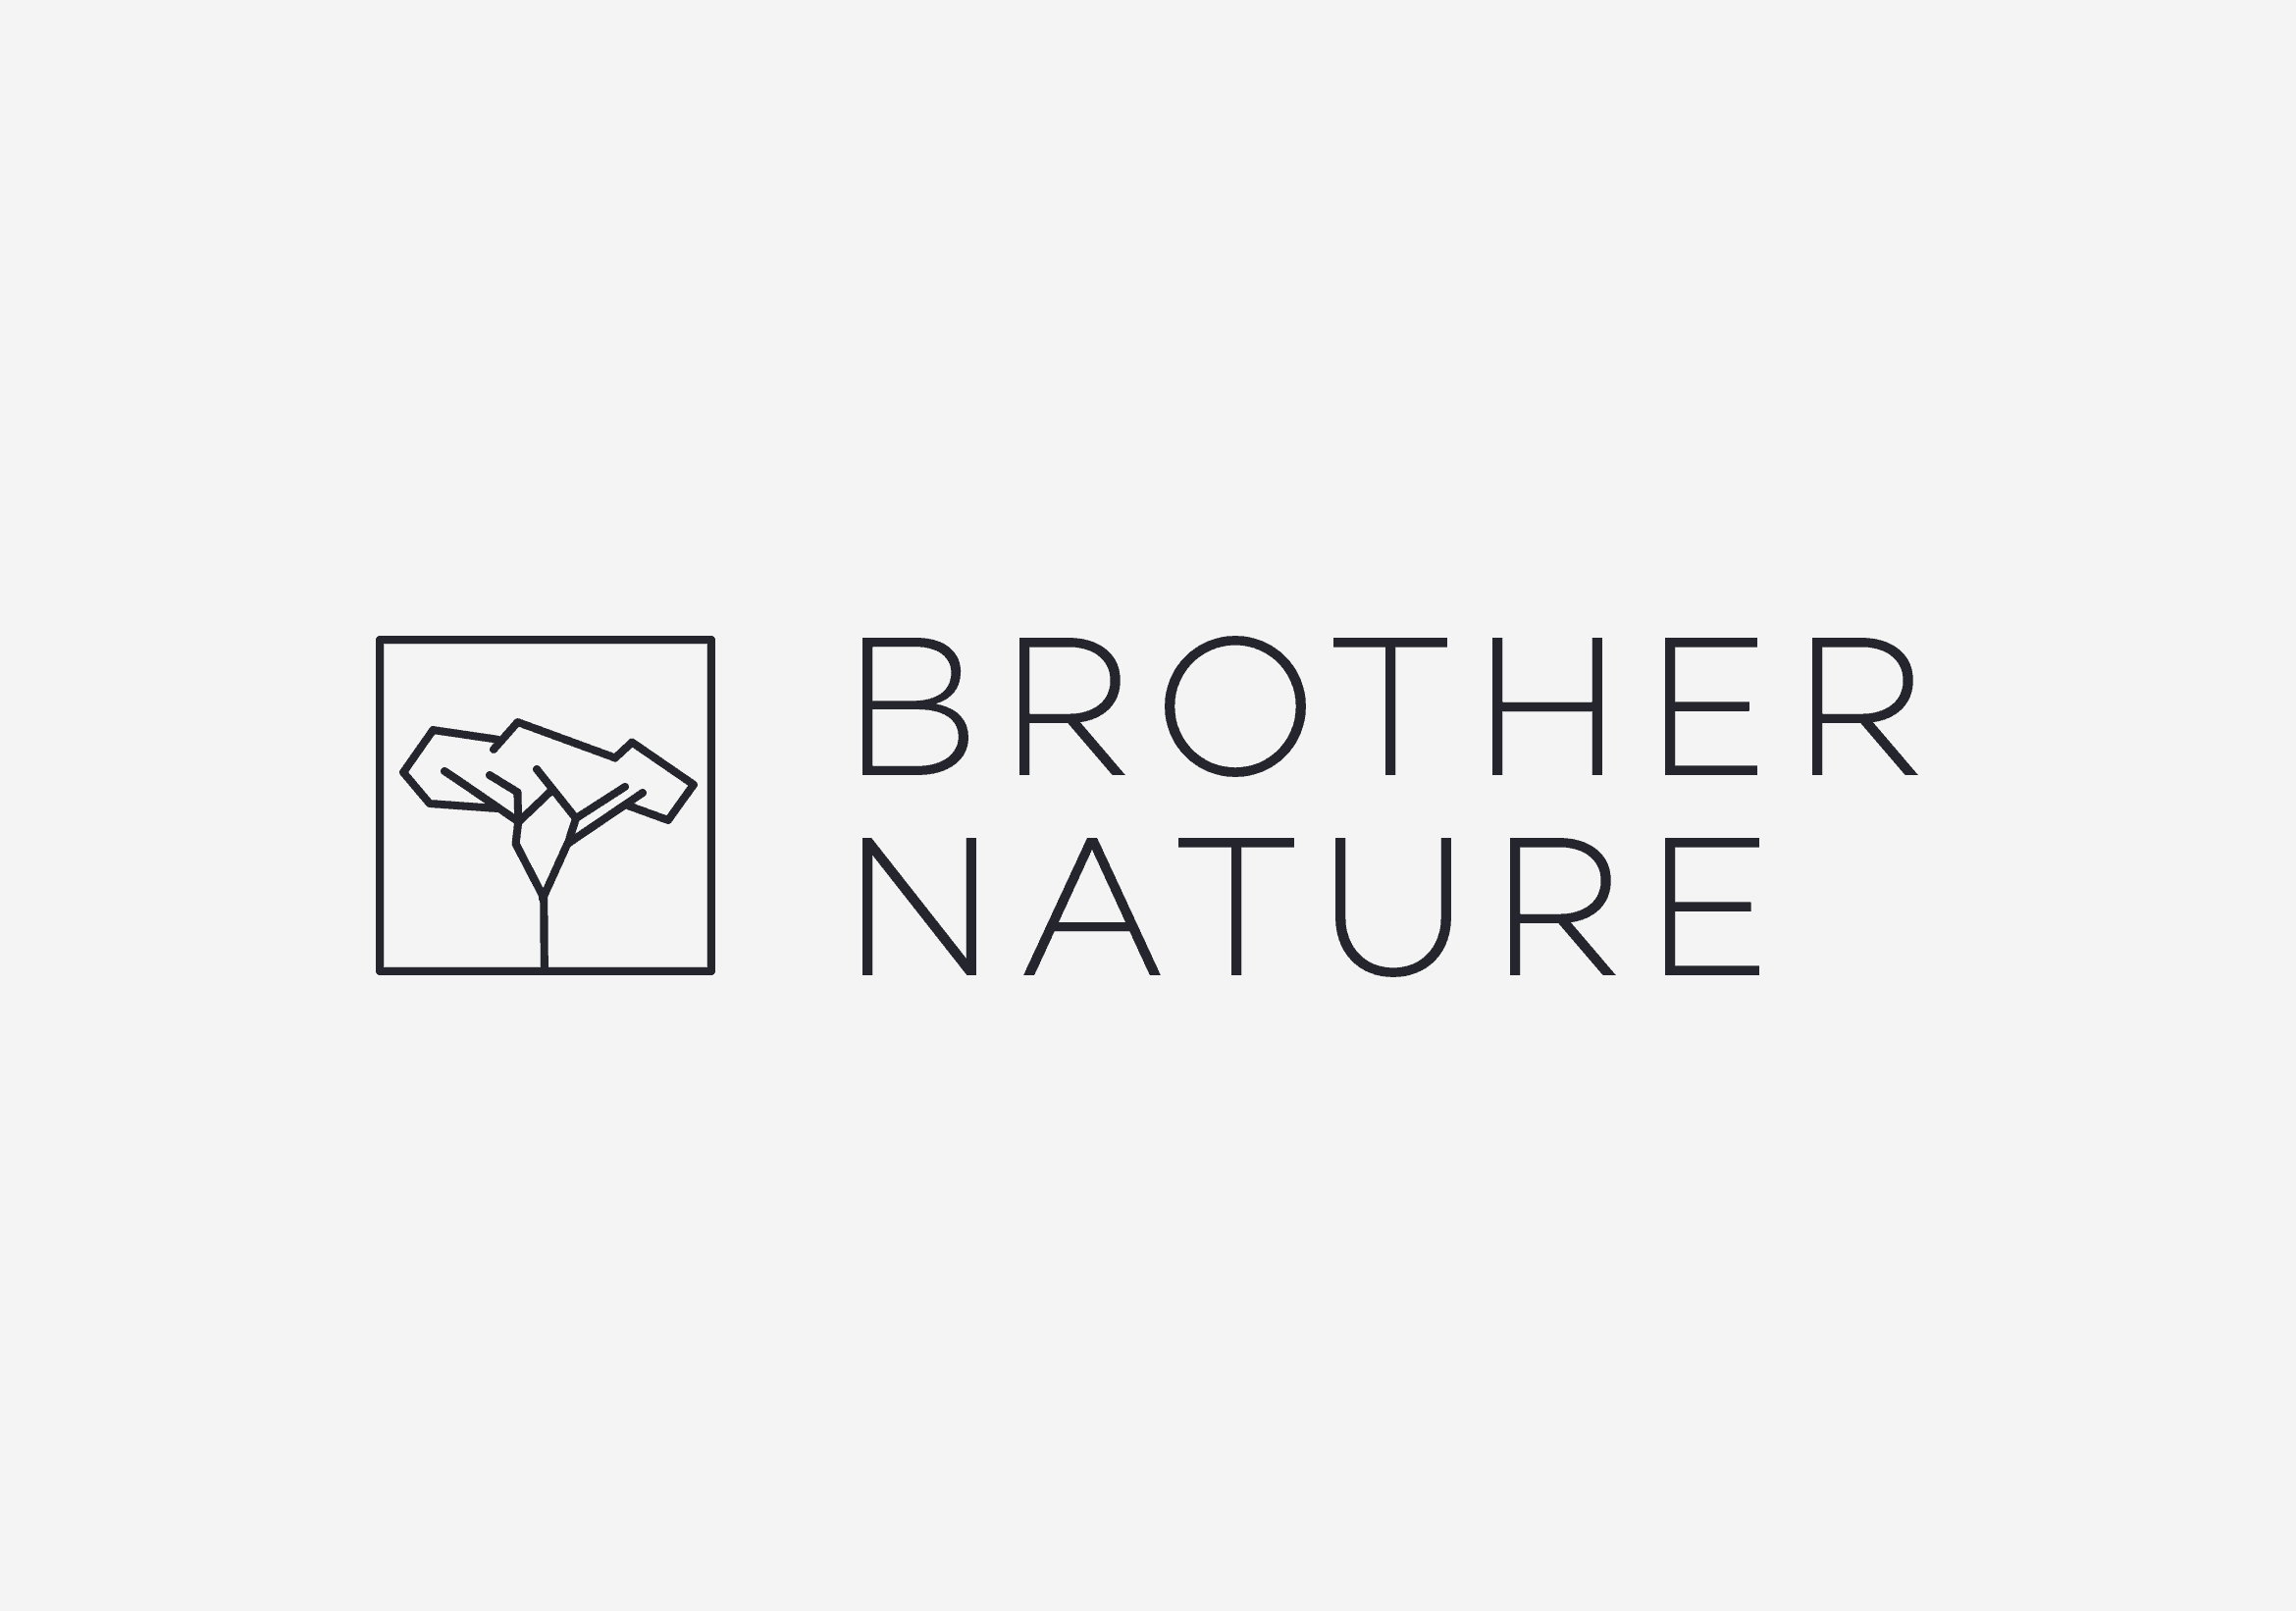 logos-brothernature-logo